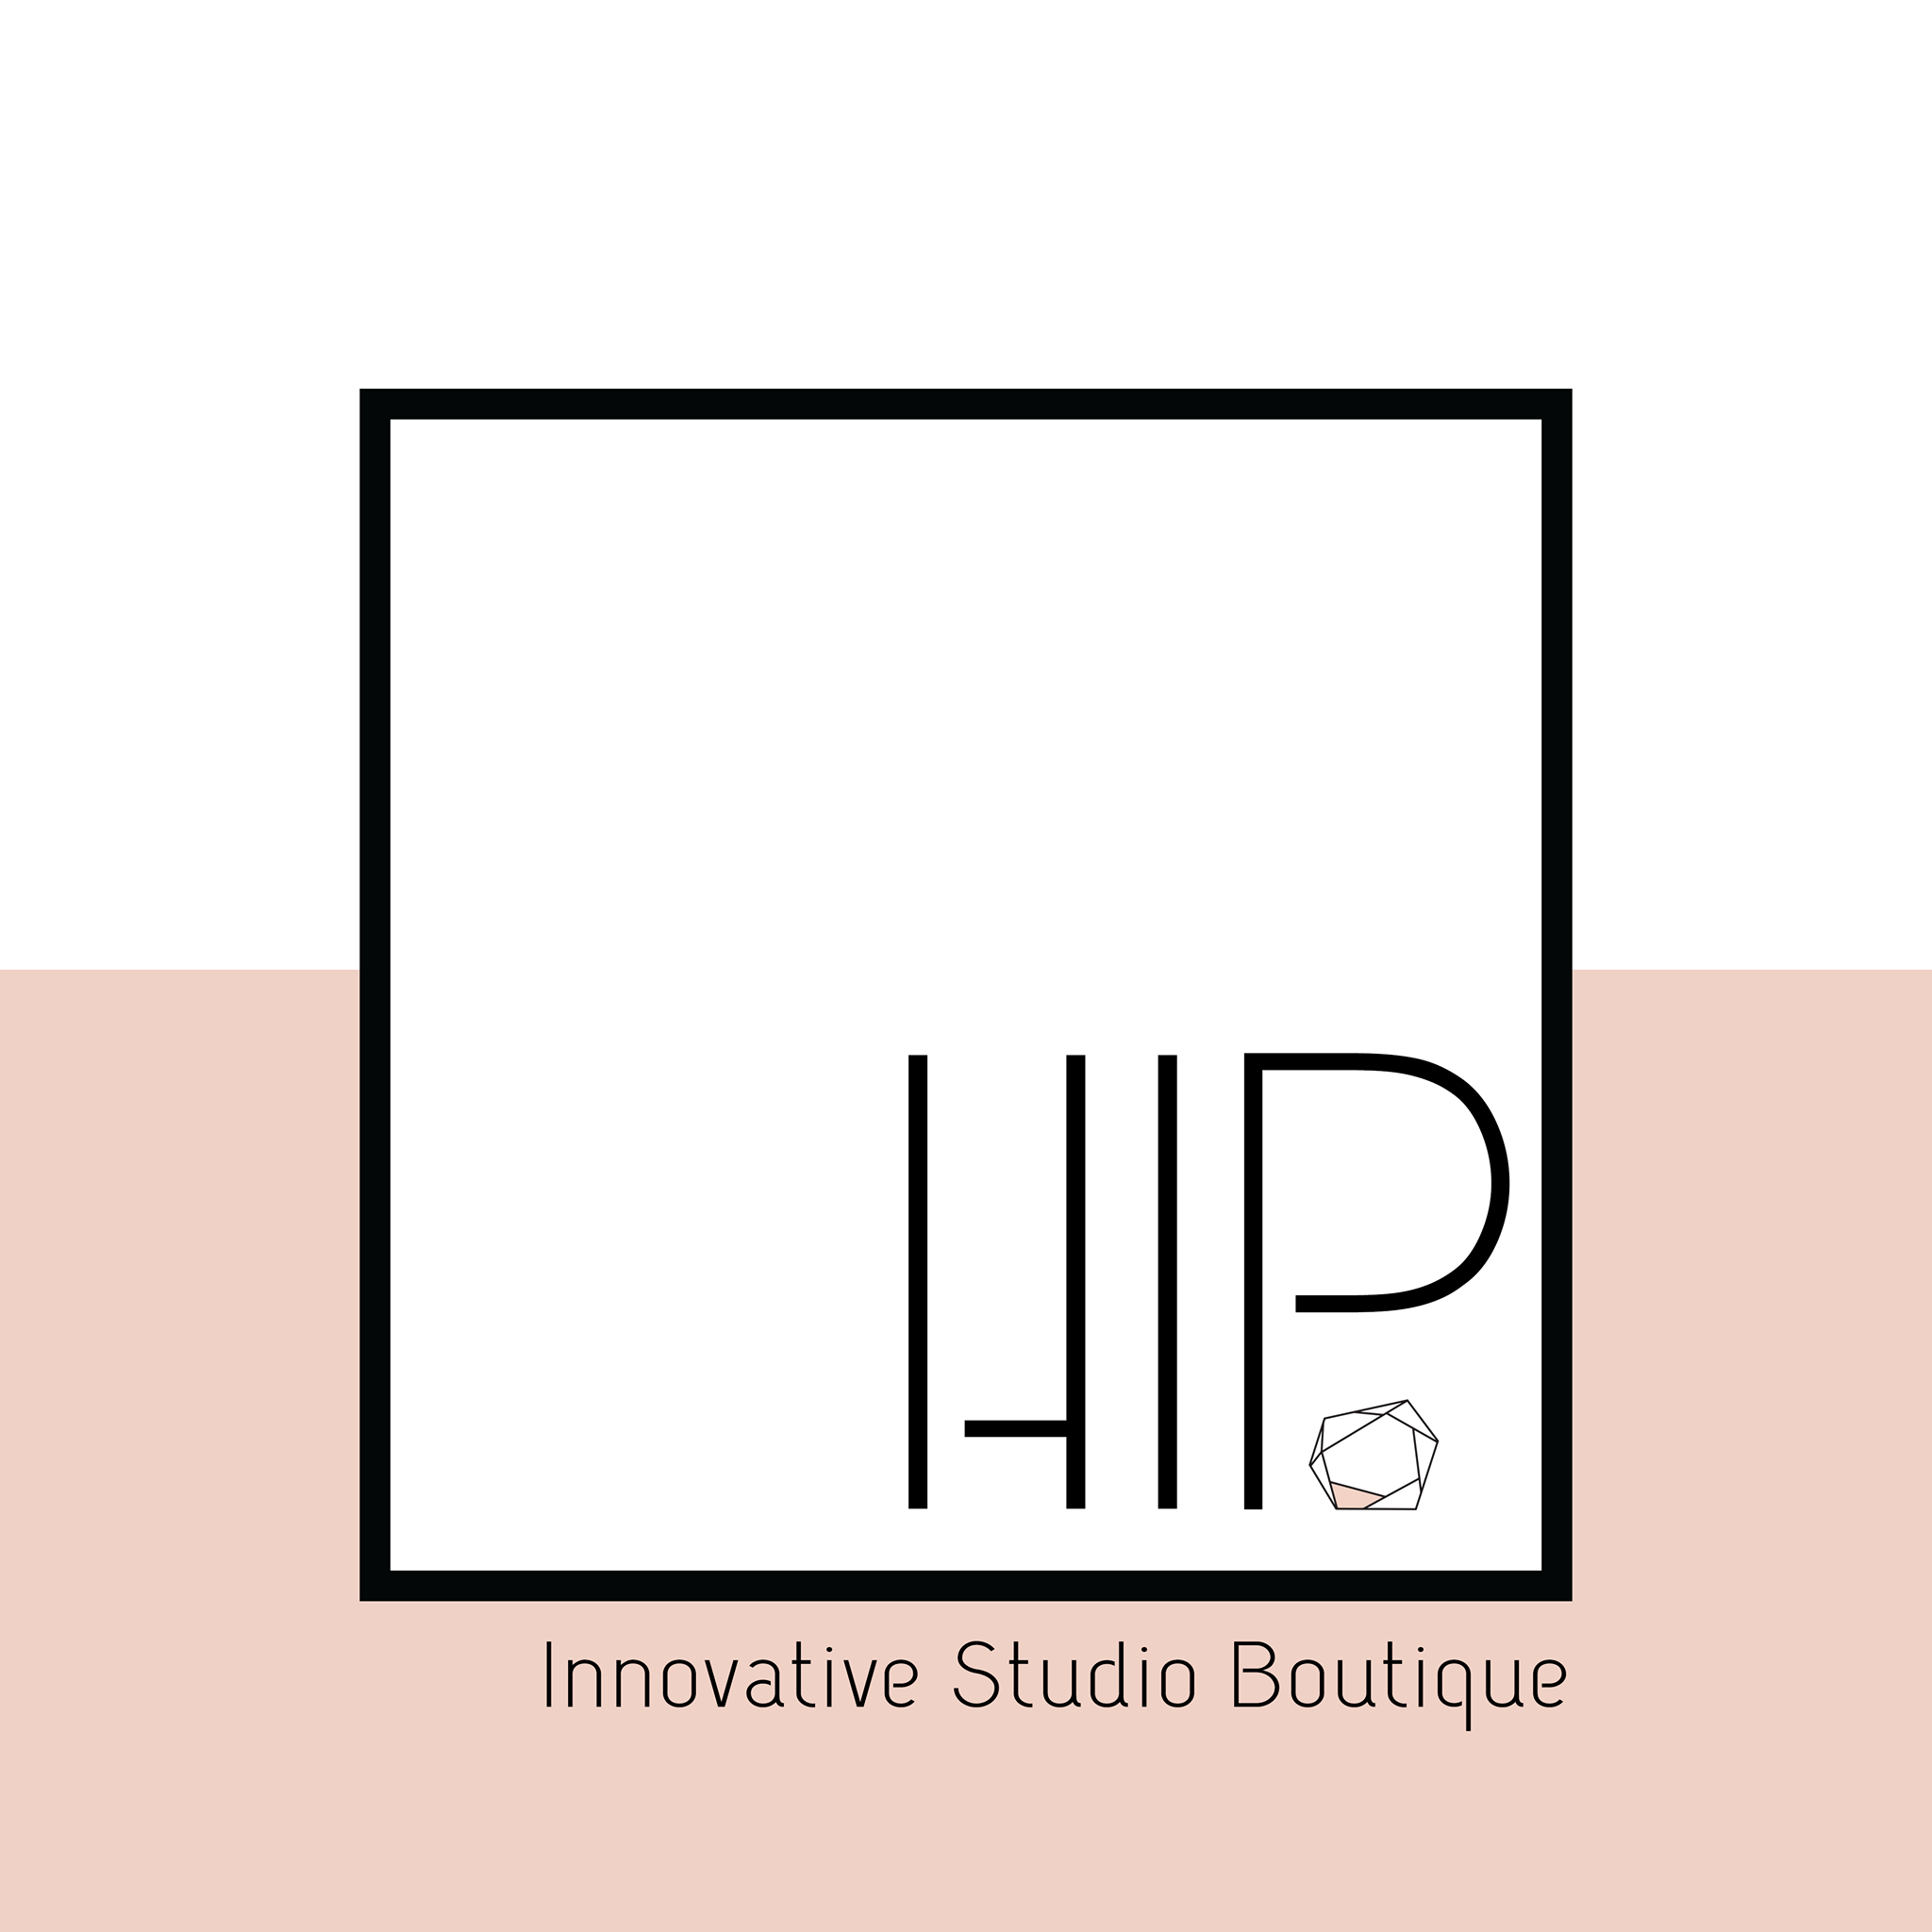 HIP INNOVATIVE STUDIO BOUTIQUE